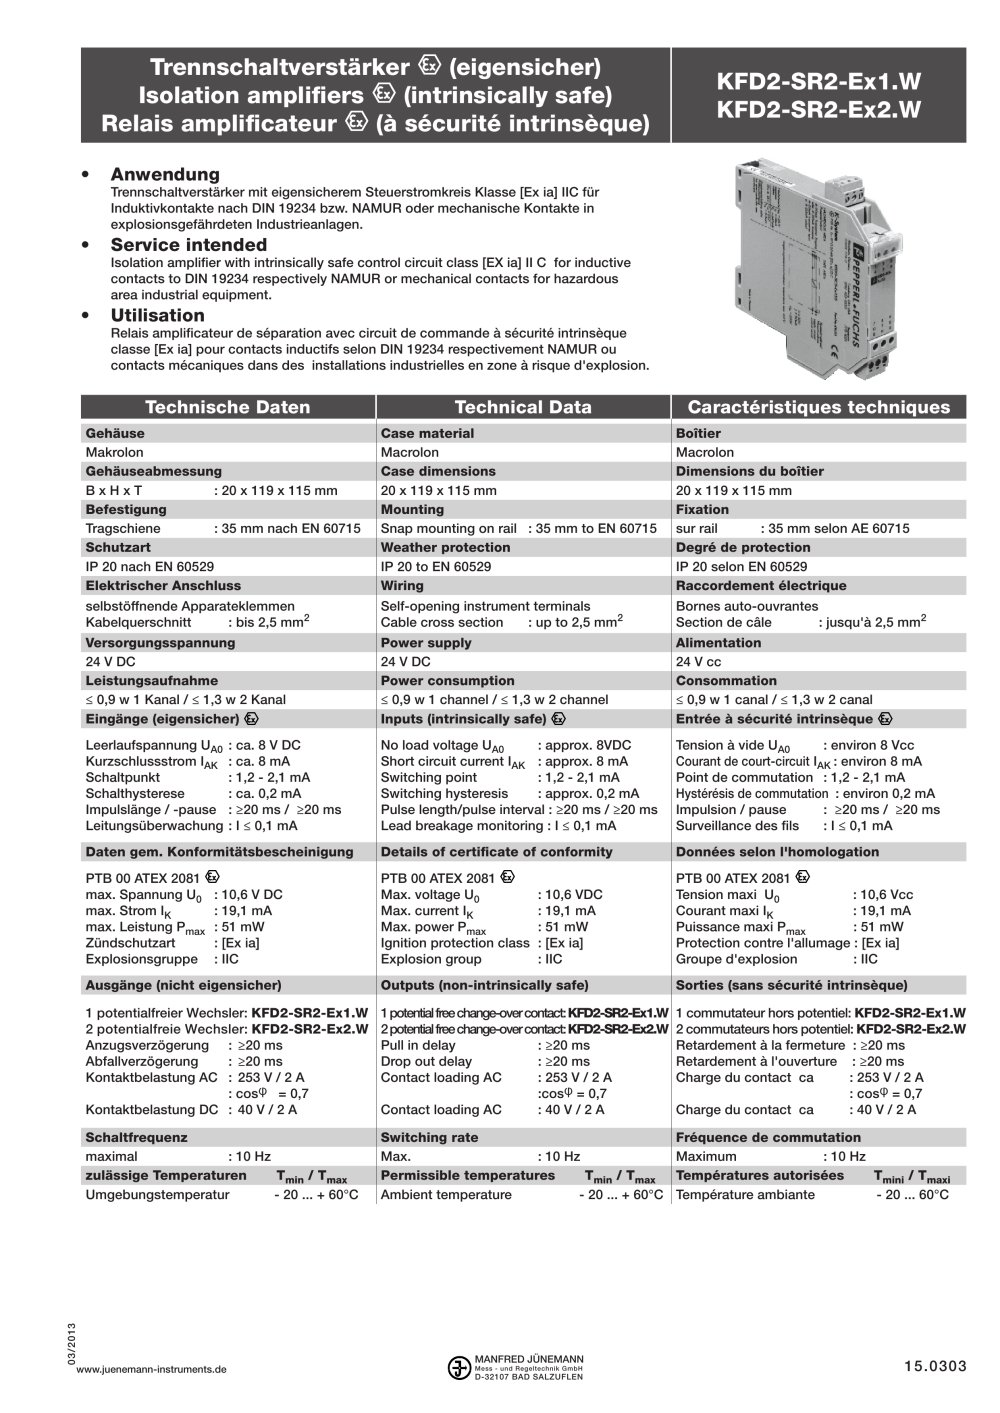 kfd2 sr2 ex1w kfd2 sr2 ex1w isolation amplifiers 573830_1b kfd2 sr2 ex1 w, kfd2 sr2 ex1 w isolation amplifiers manfred kfd2-sr2-ex1.w wiring diagram at love-stories.co